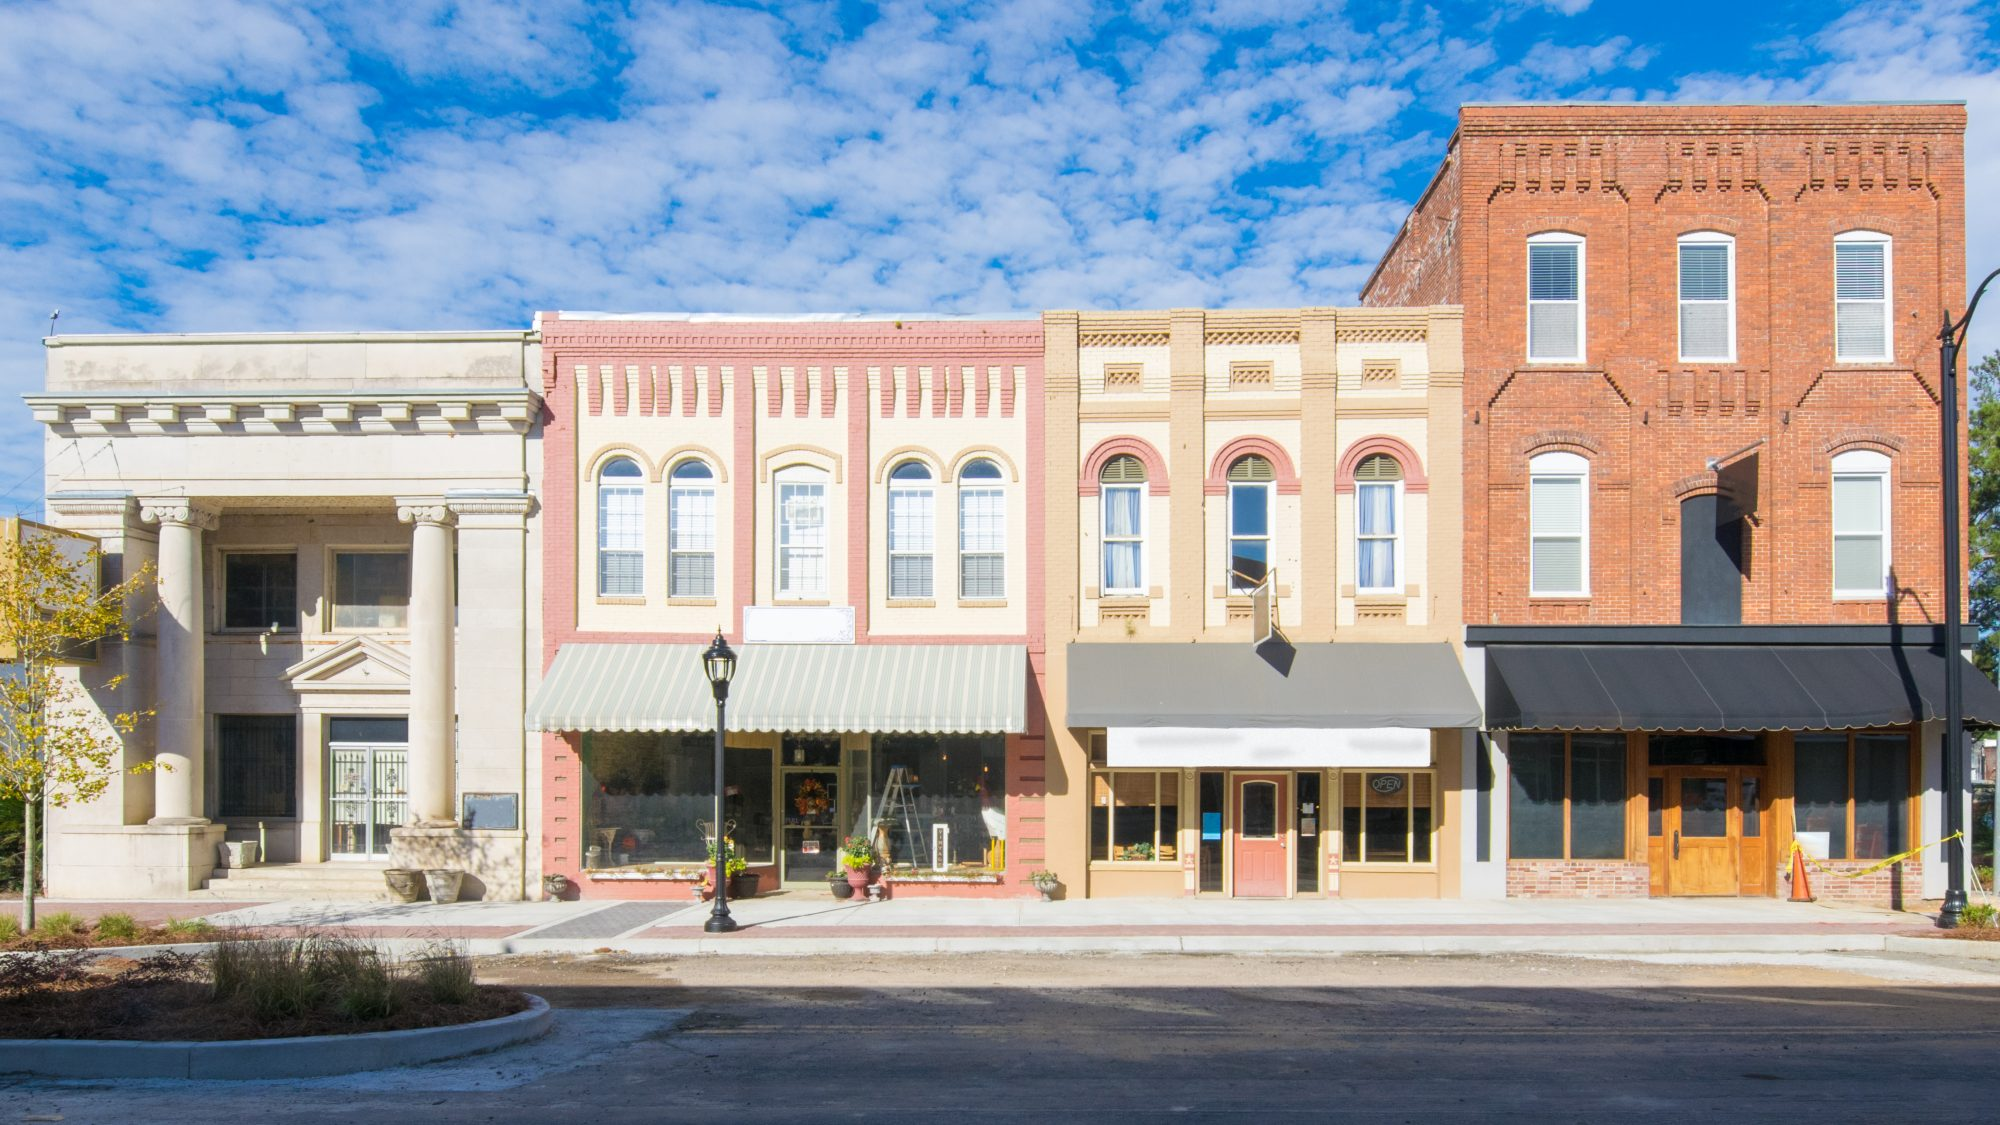 5 Small U.S. Towns Worthy of Your 2020 Destination Bucket List